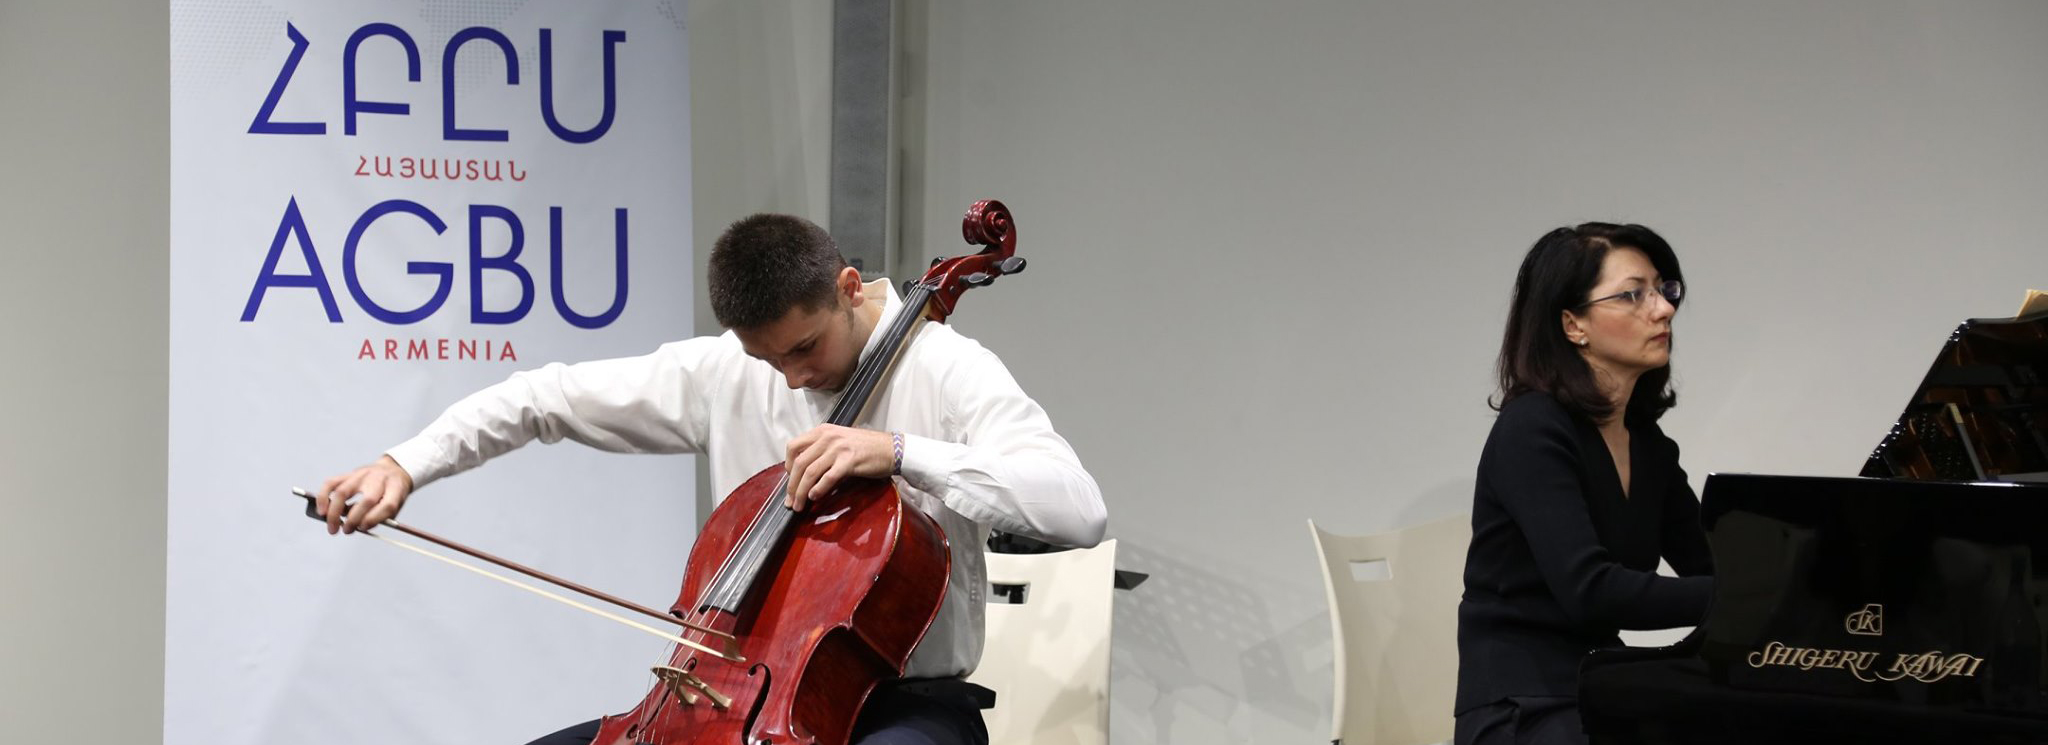 AGBU France supports AGBU Discovers Talents Programme in Armenia and lends Instruments to Promising Young Musicians